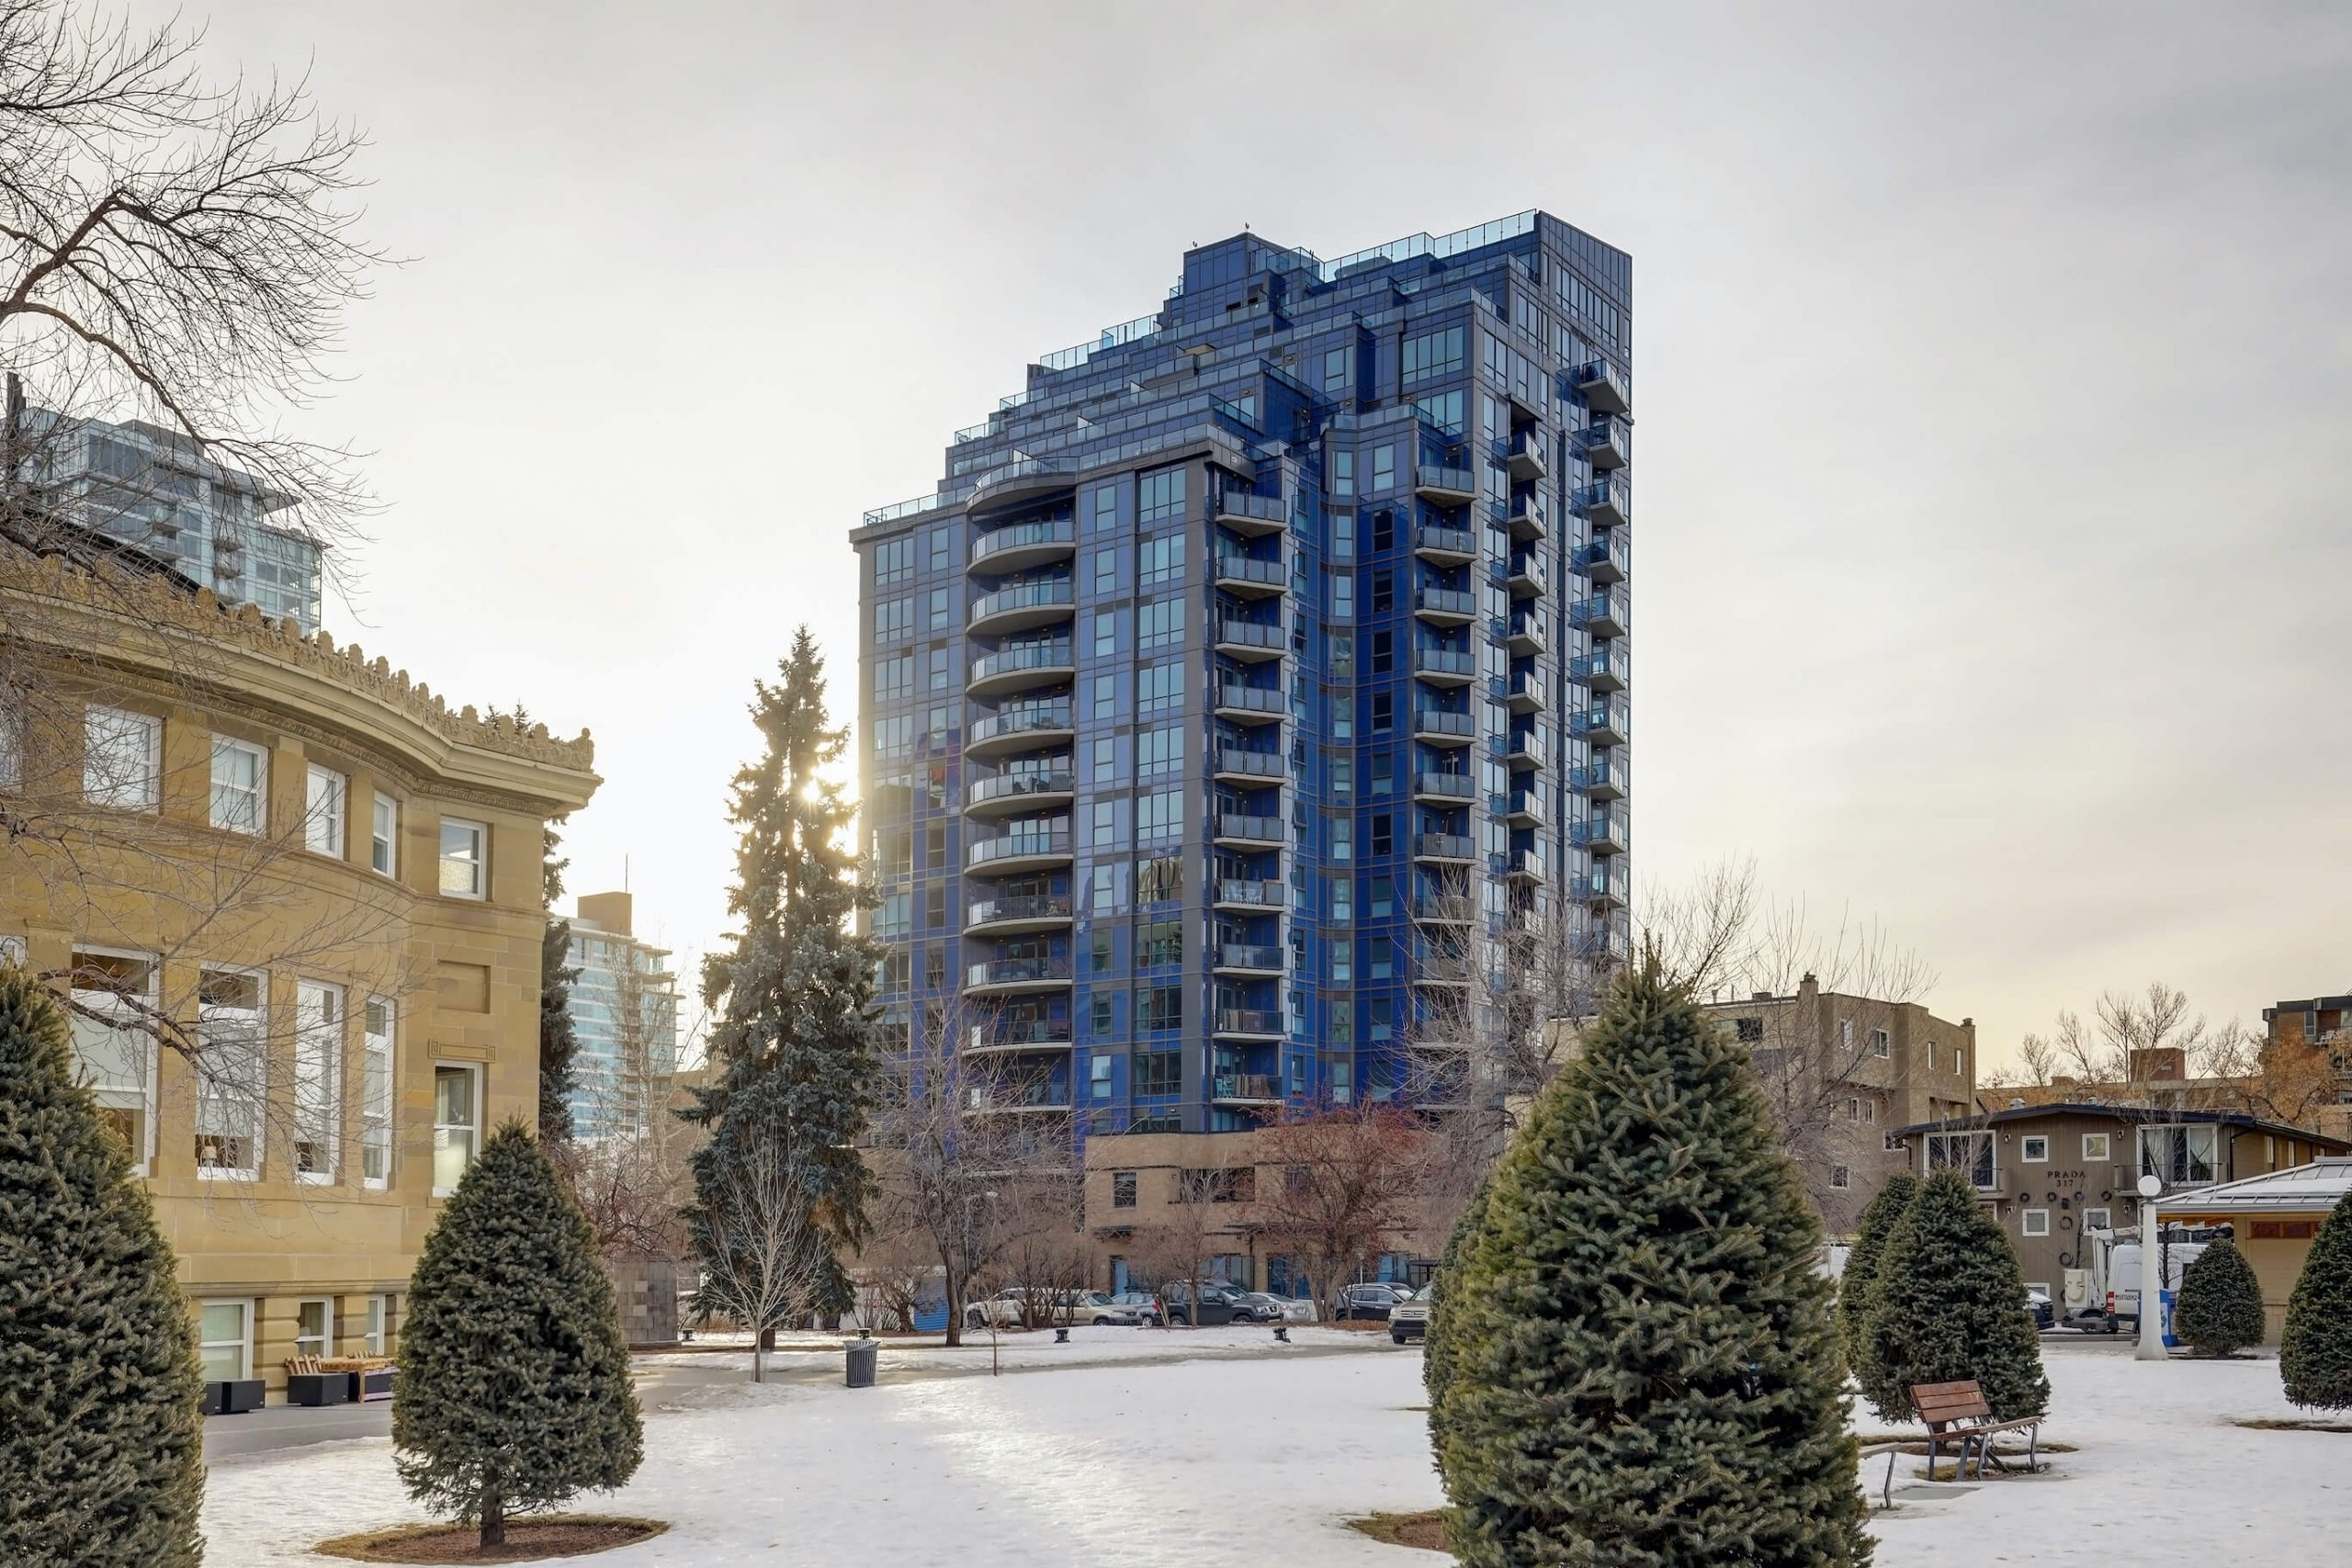 Modern glass condominium tower in Calgary Beltline community. Condo for sale by Plintz Real Estate.